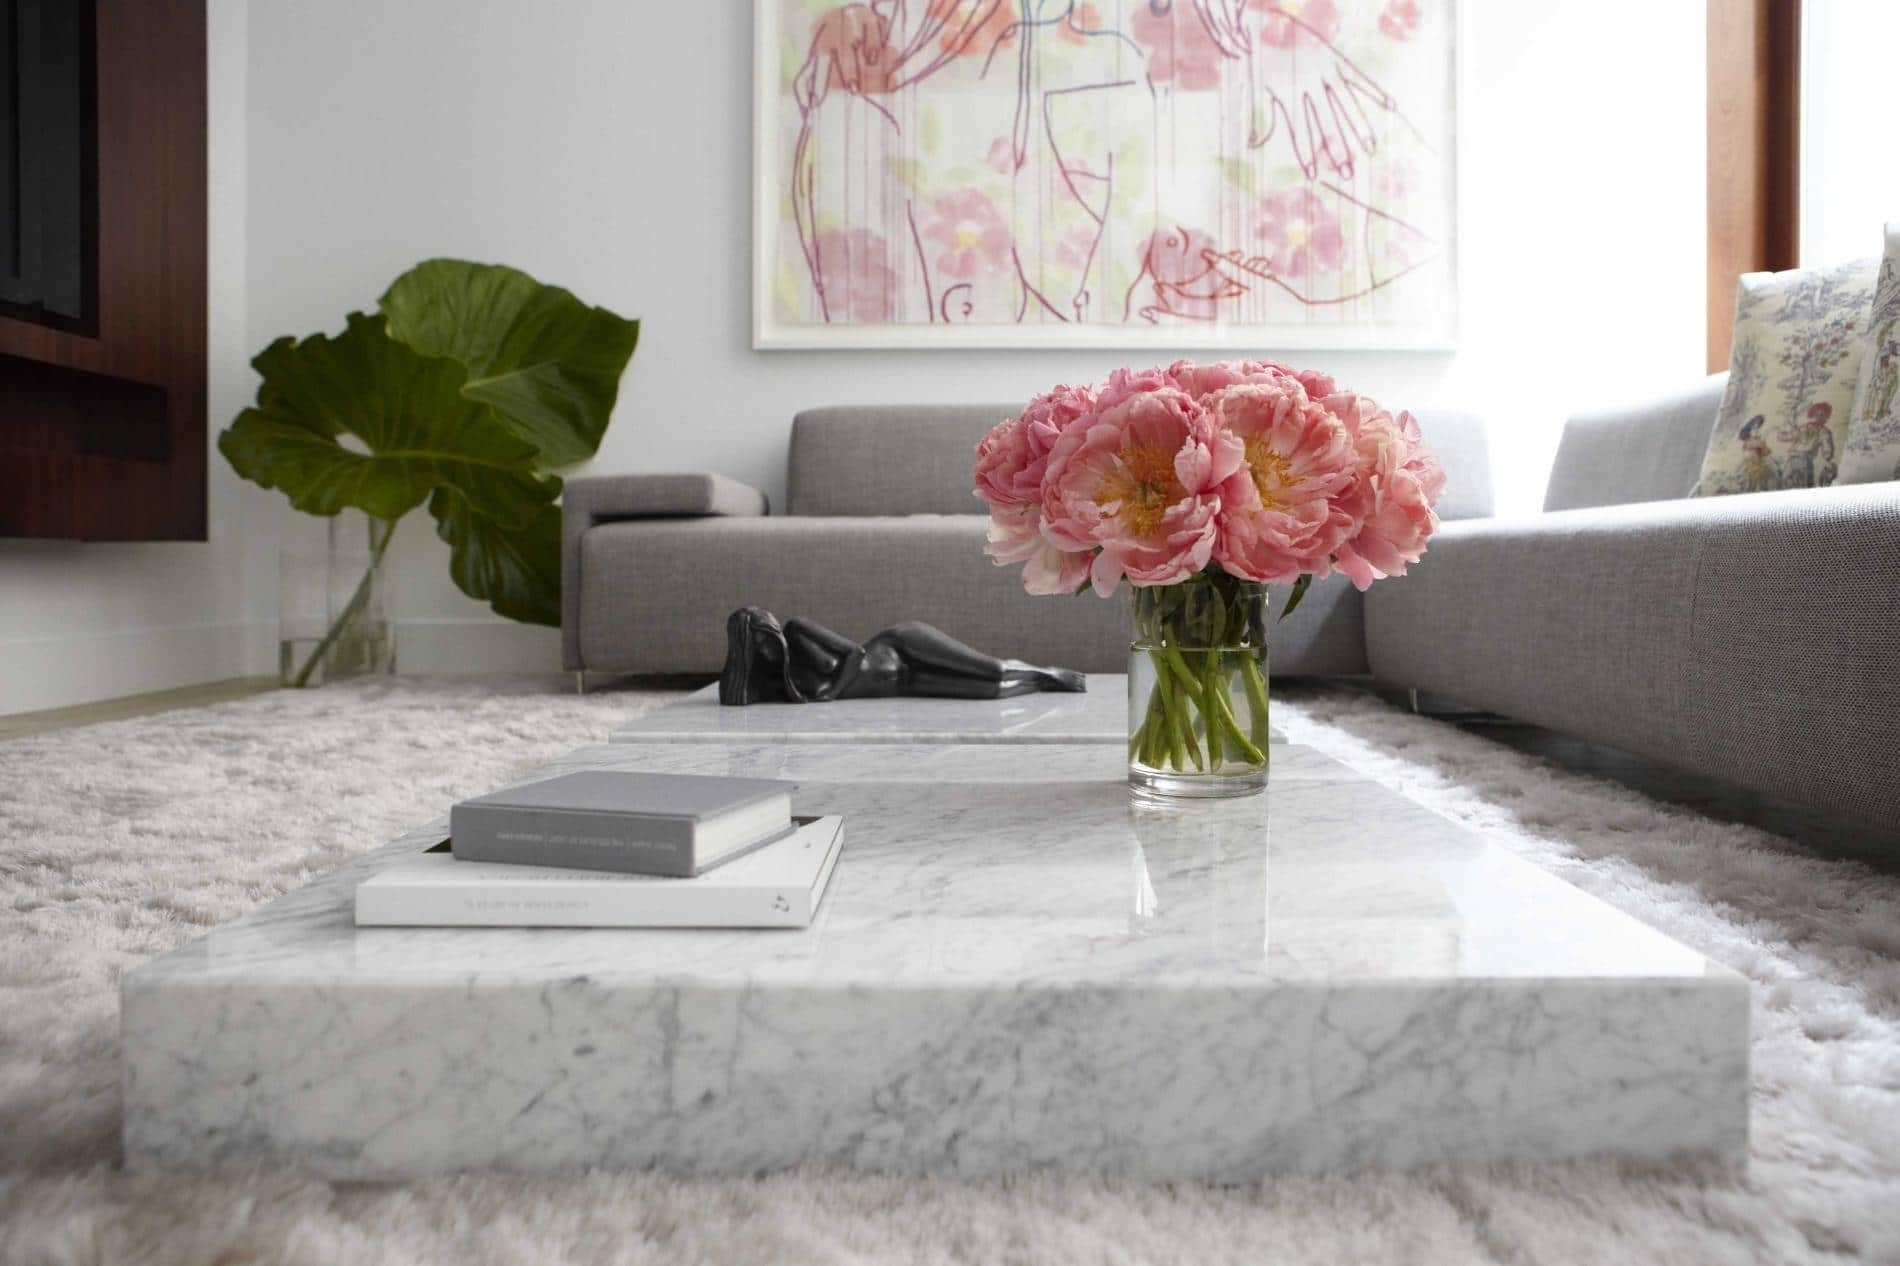 Marble Coffee Table Design, Style Ideas And Tips - Sefa Stone with regard to Large Slab Marble Coffee Tables With Antiqued Silver Base (Image 17 of 30)